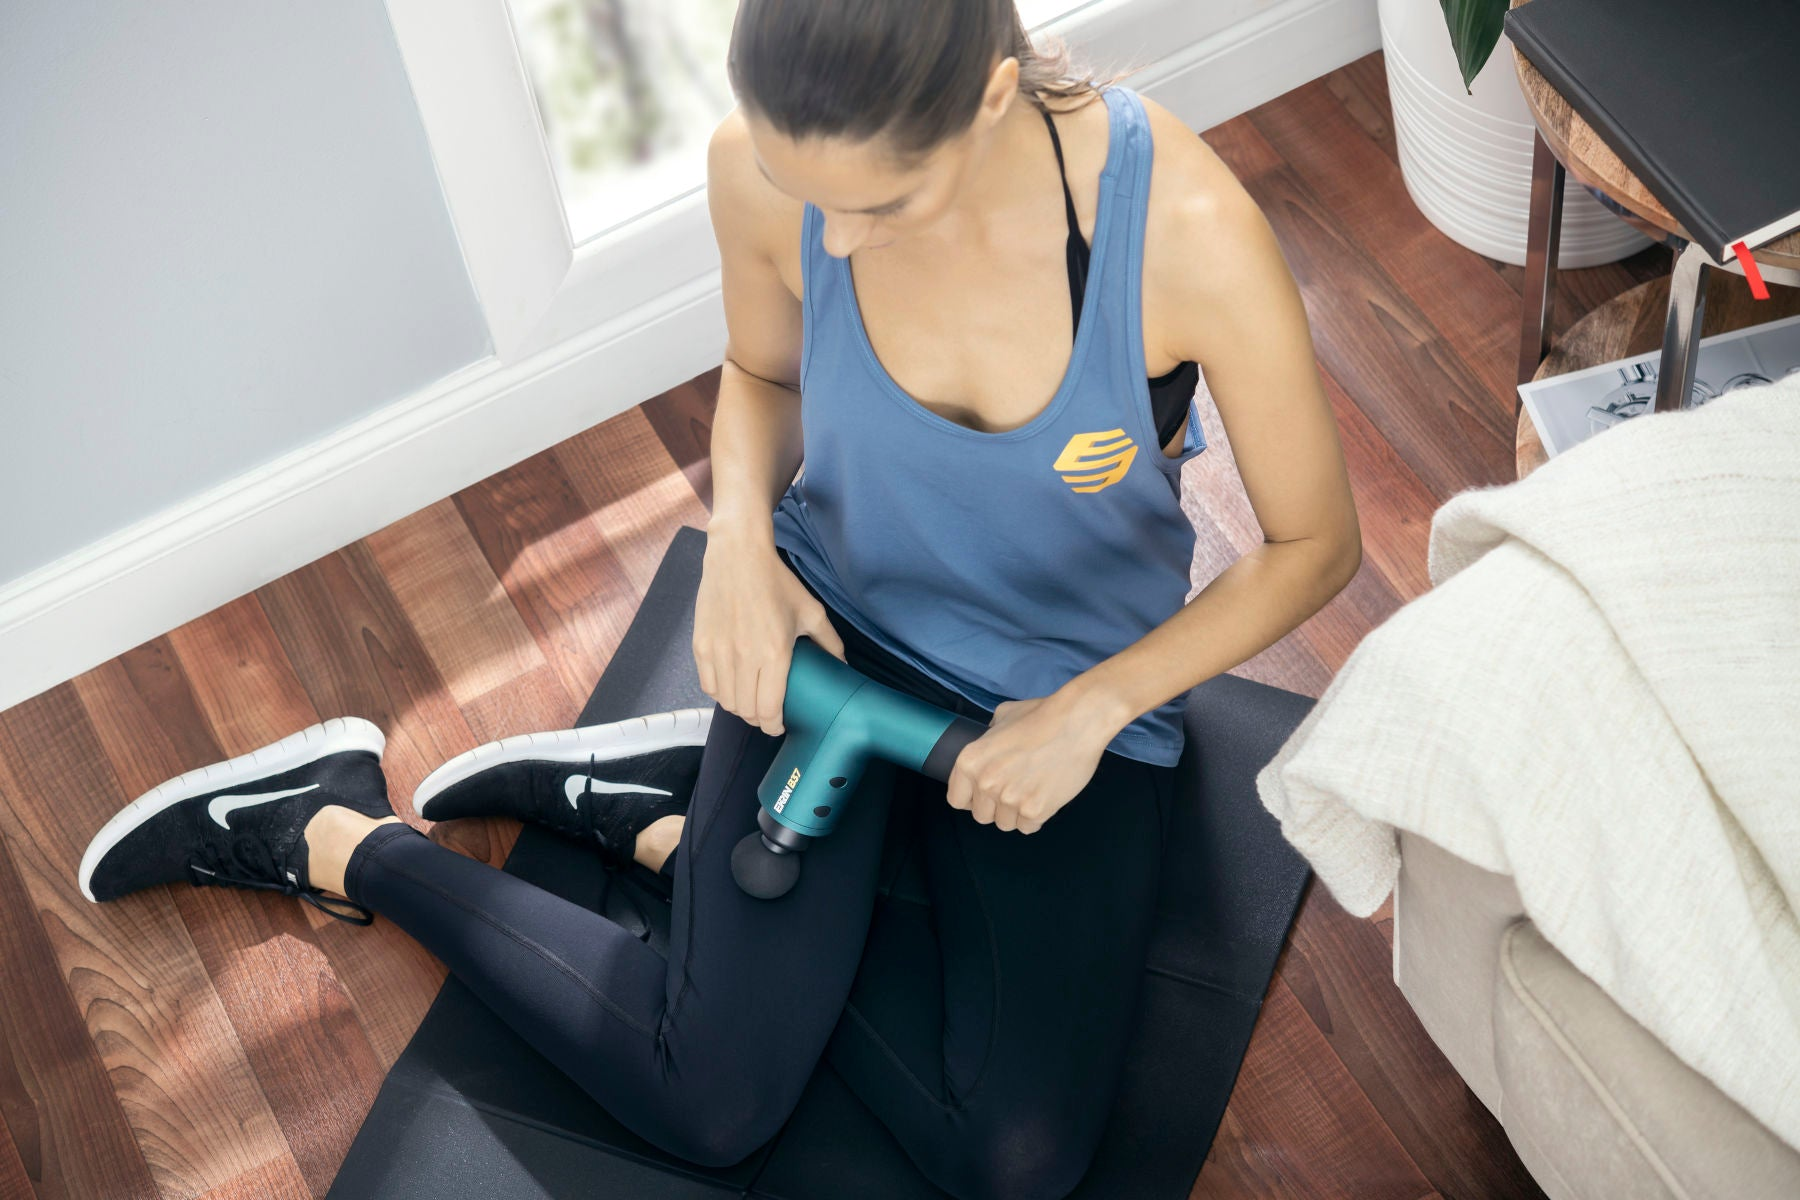 Athletic woman on the floor massaging her quad muscle with a green ekrin b37 massage gun